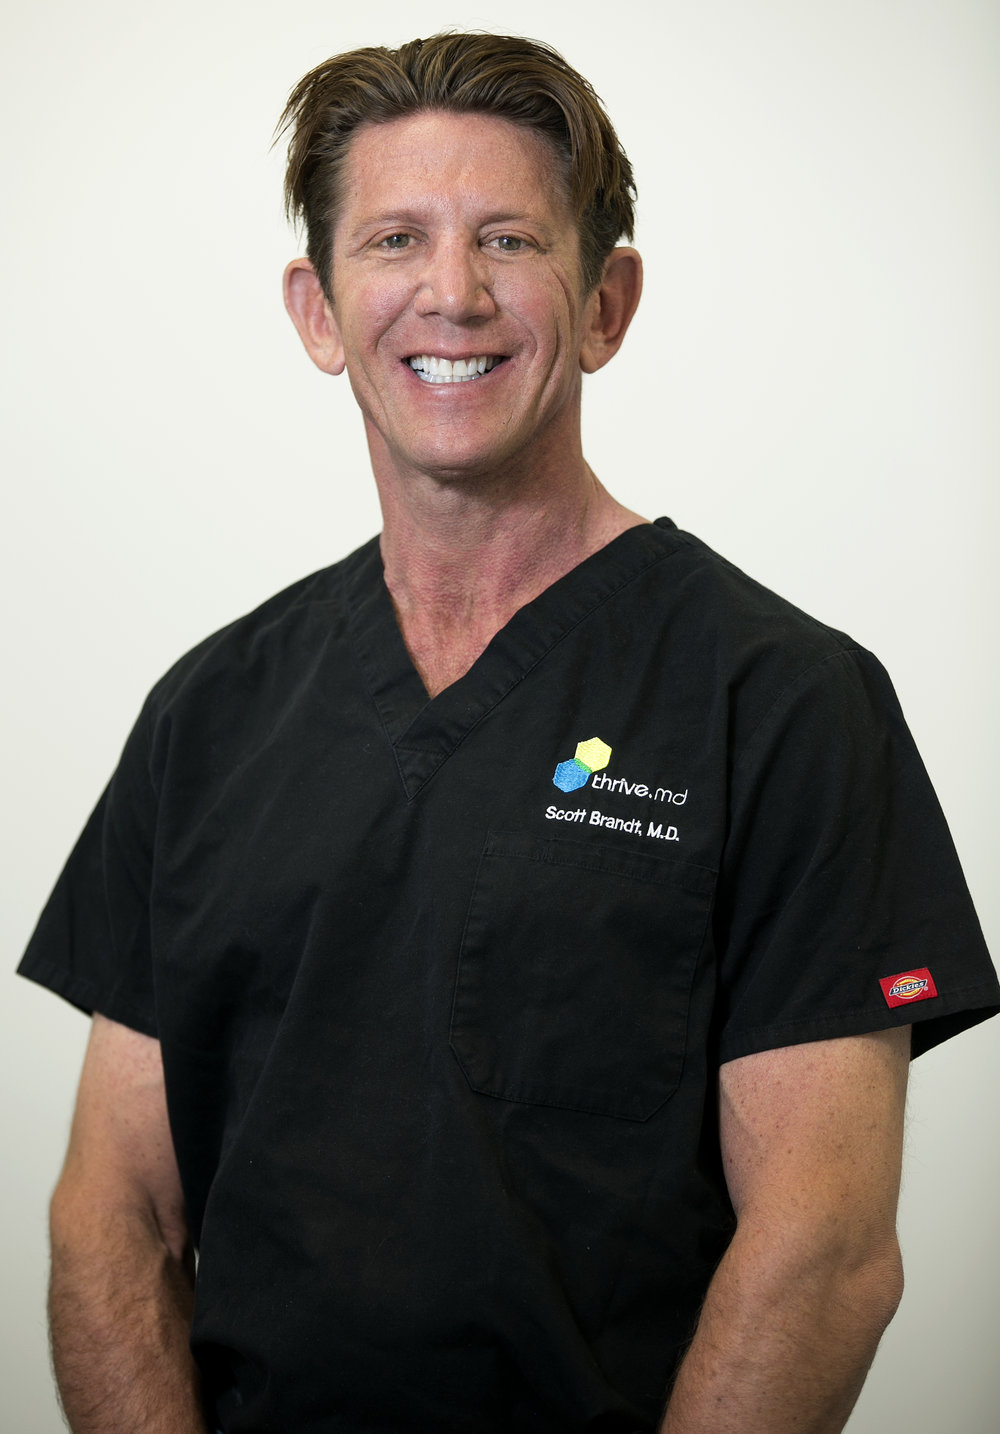 Dr. Scott Brandt, MD